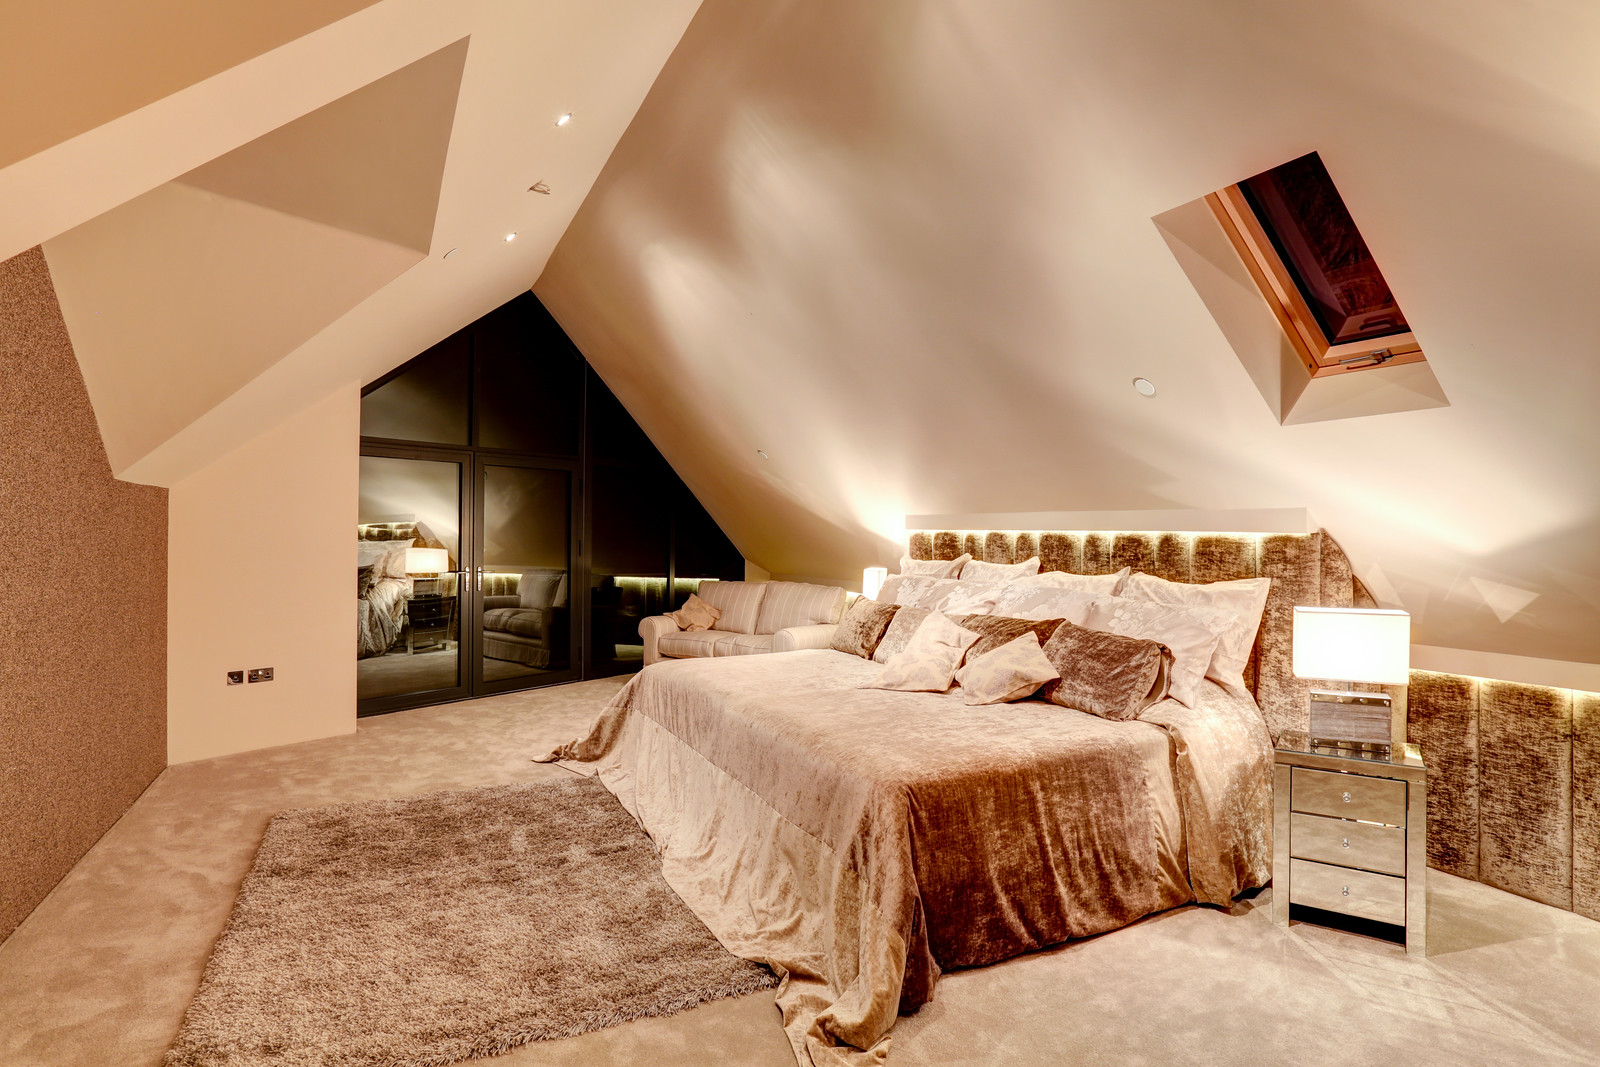 Luxurious bedroom, Tanglewood Nottimghamshire. Luxury home by Guy Phoenix